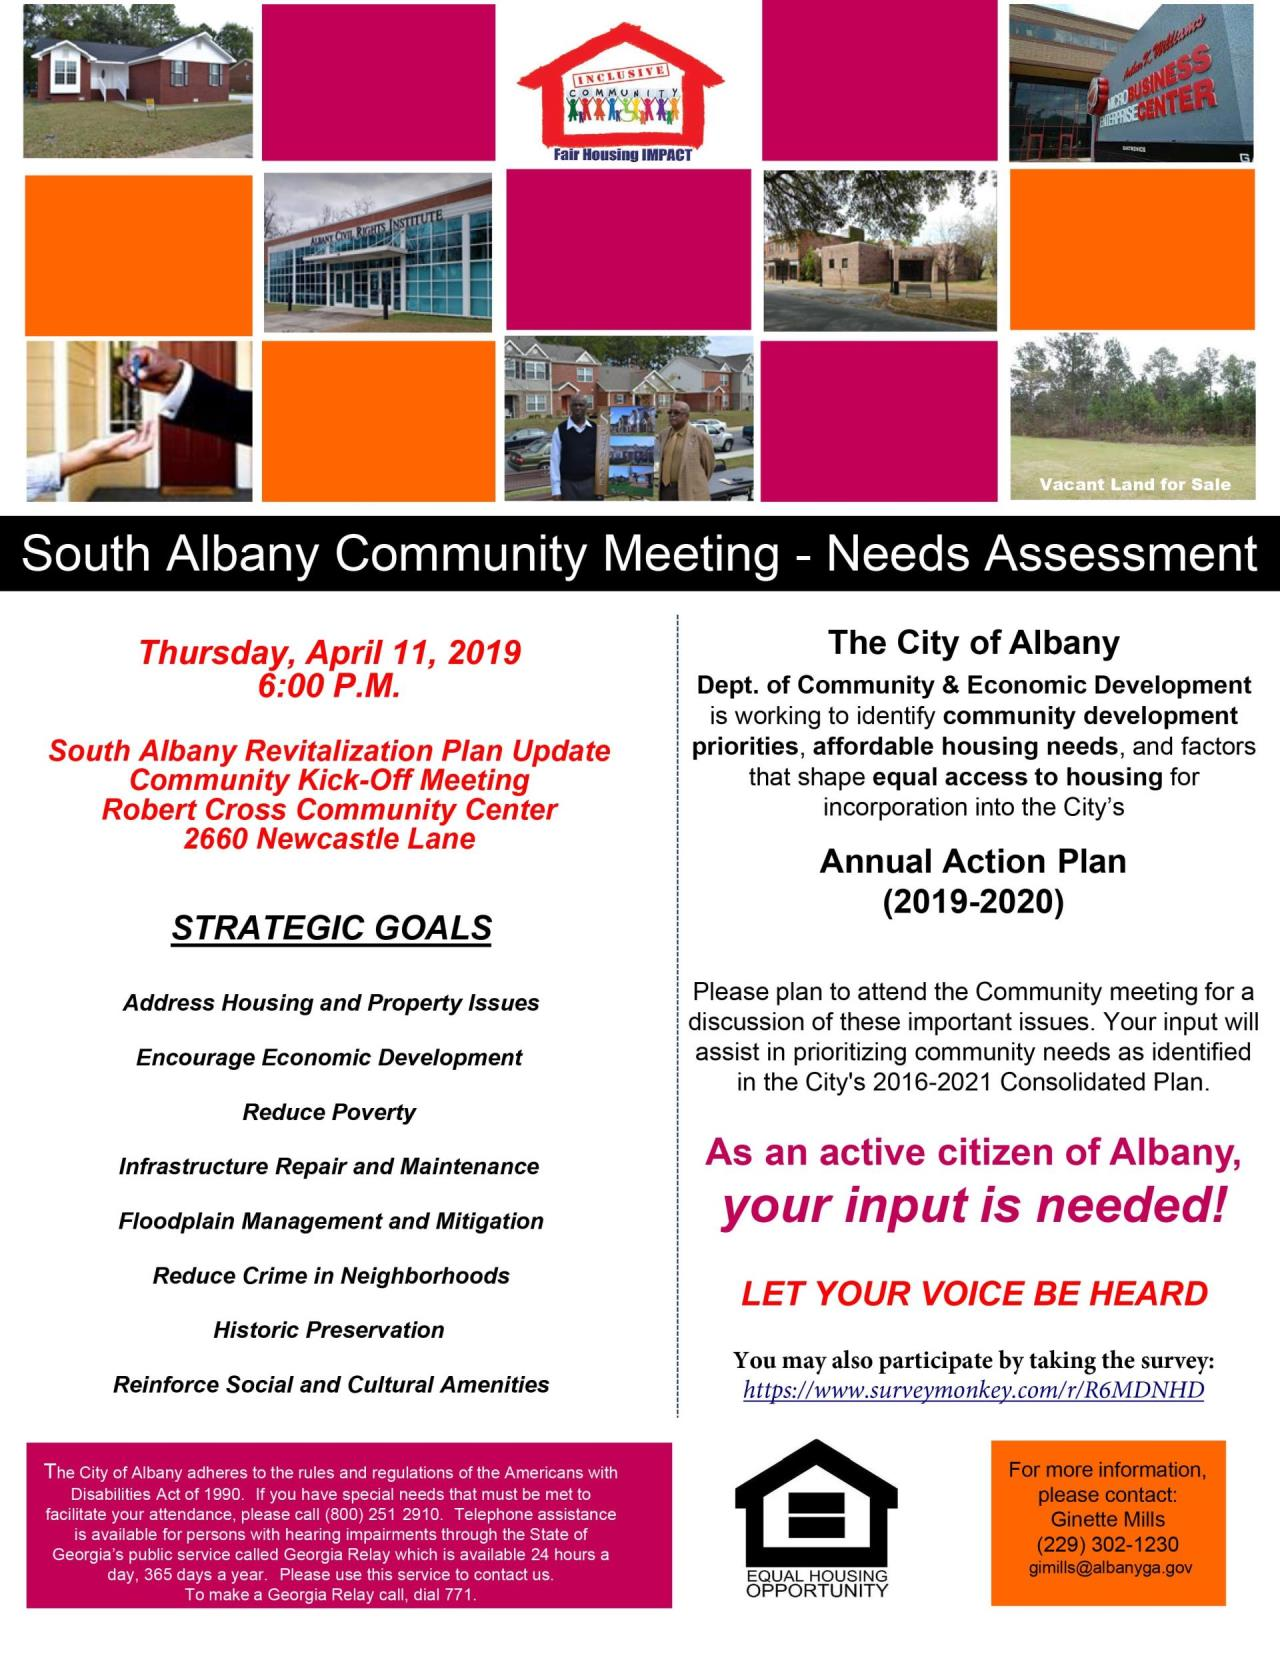 Flyer for South Albany Revitalization Plan Update - Community Kick-Off Meeting (April 11, 2019)